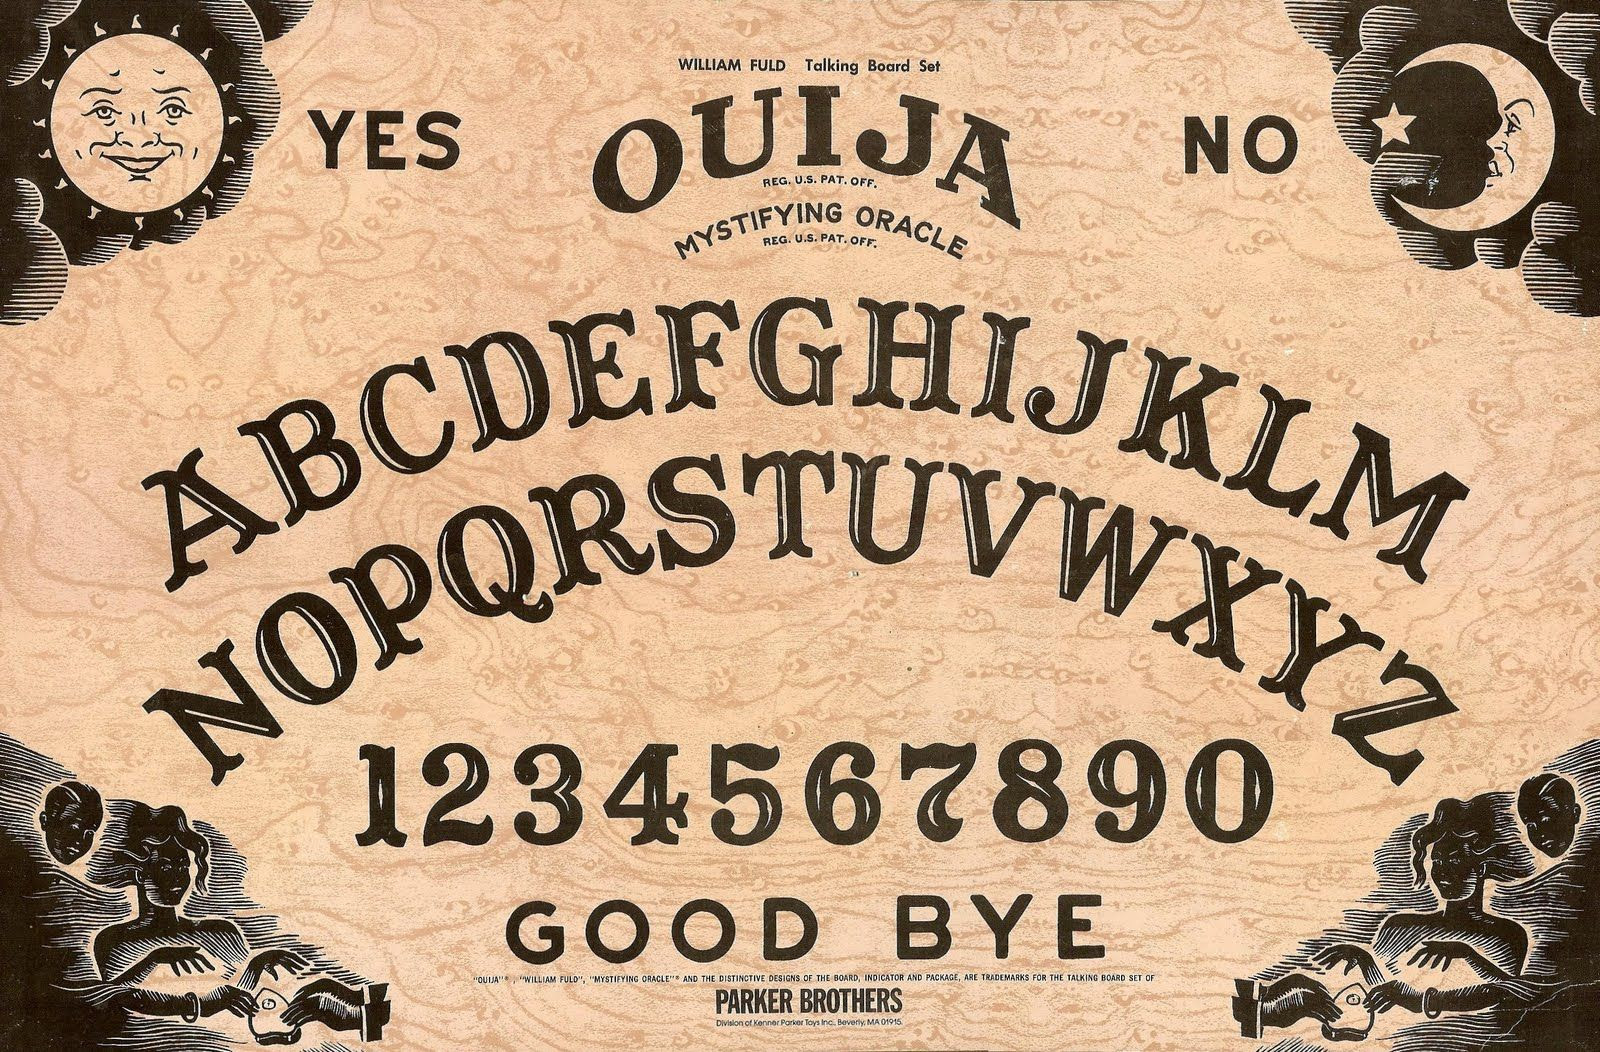 1000+ images about Ouija Boards on Pinterest | Ouija, Parlour and ...